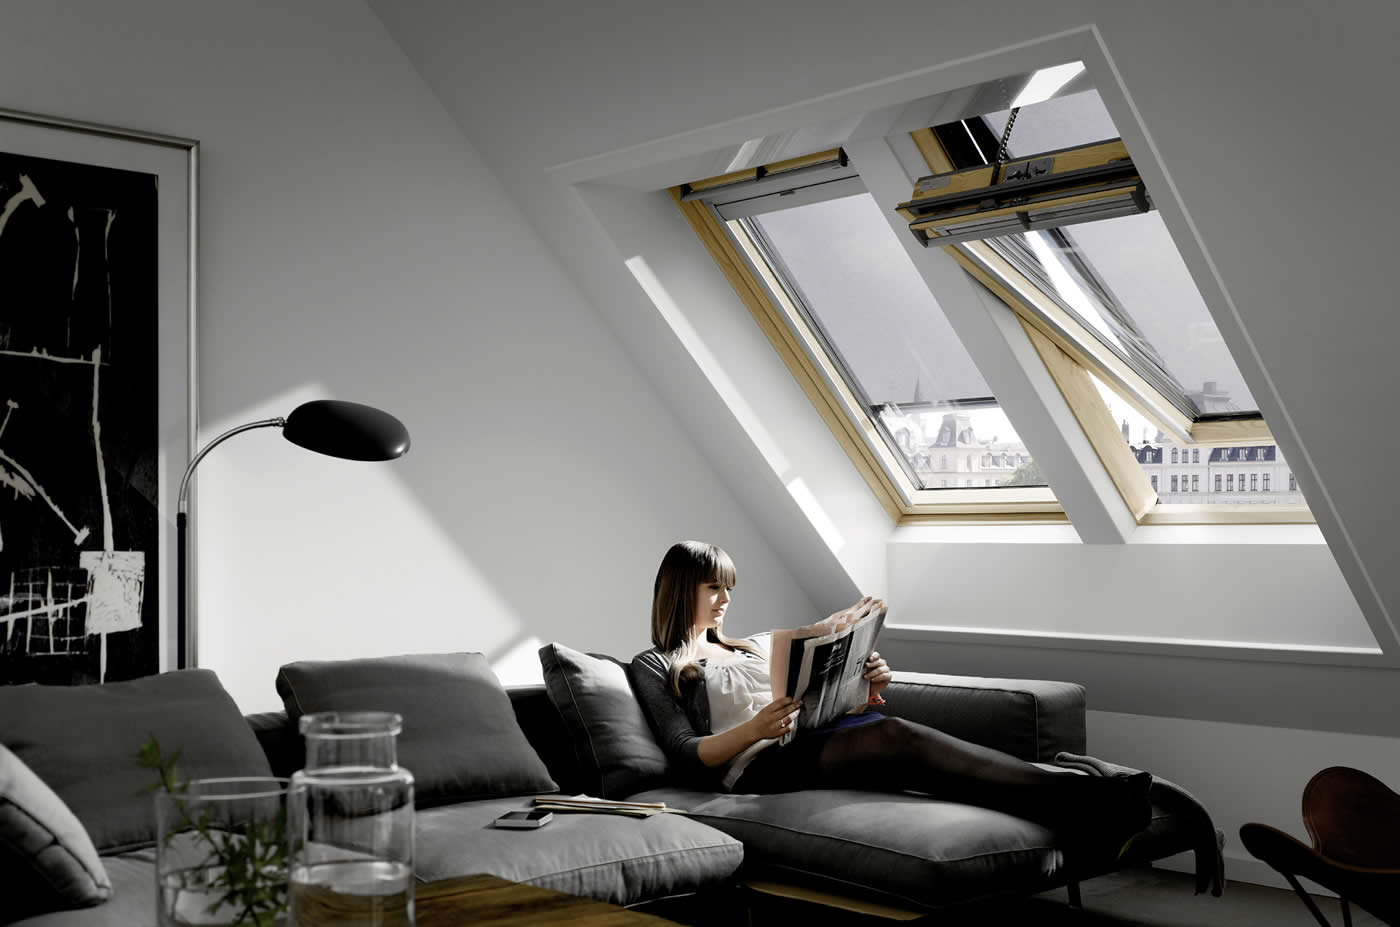 velux fenster einbau velux fenster einbau velux fenster ausbau und einbau anleitung deutsch. Black Bedroom Furniture Sets. Home Design Ideas